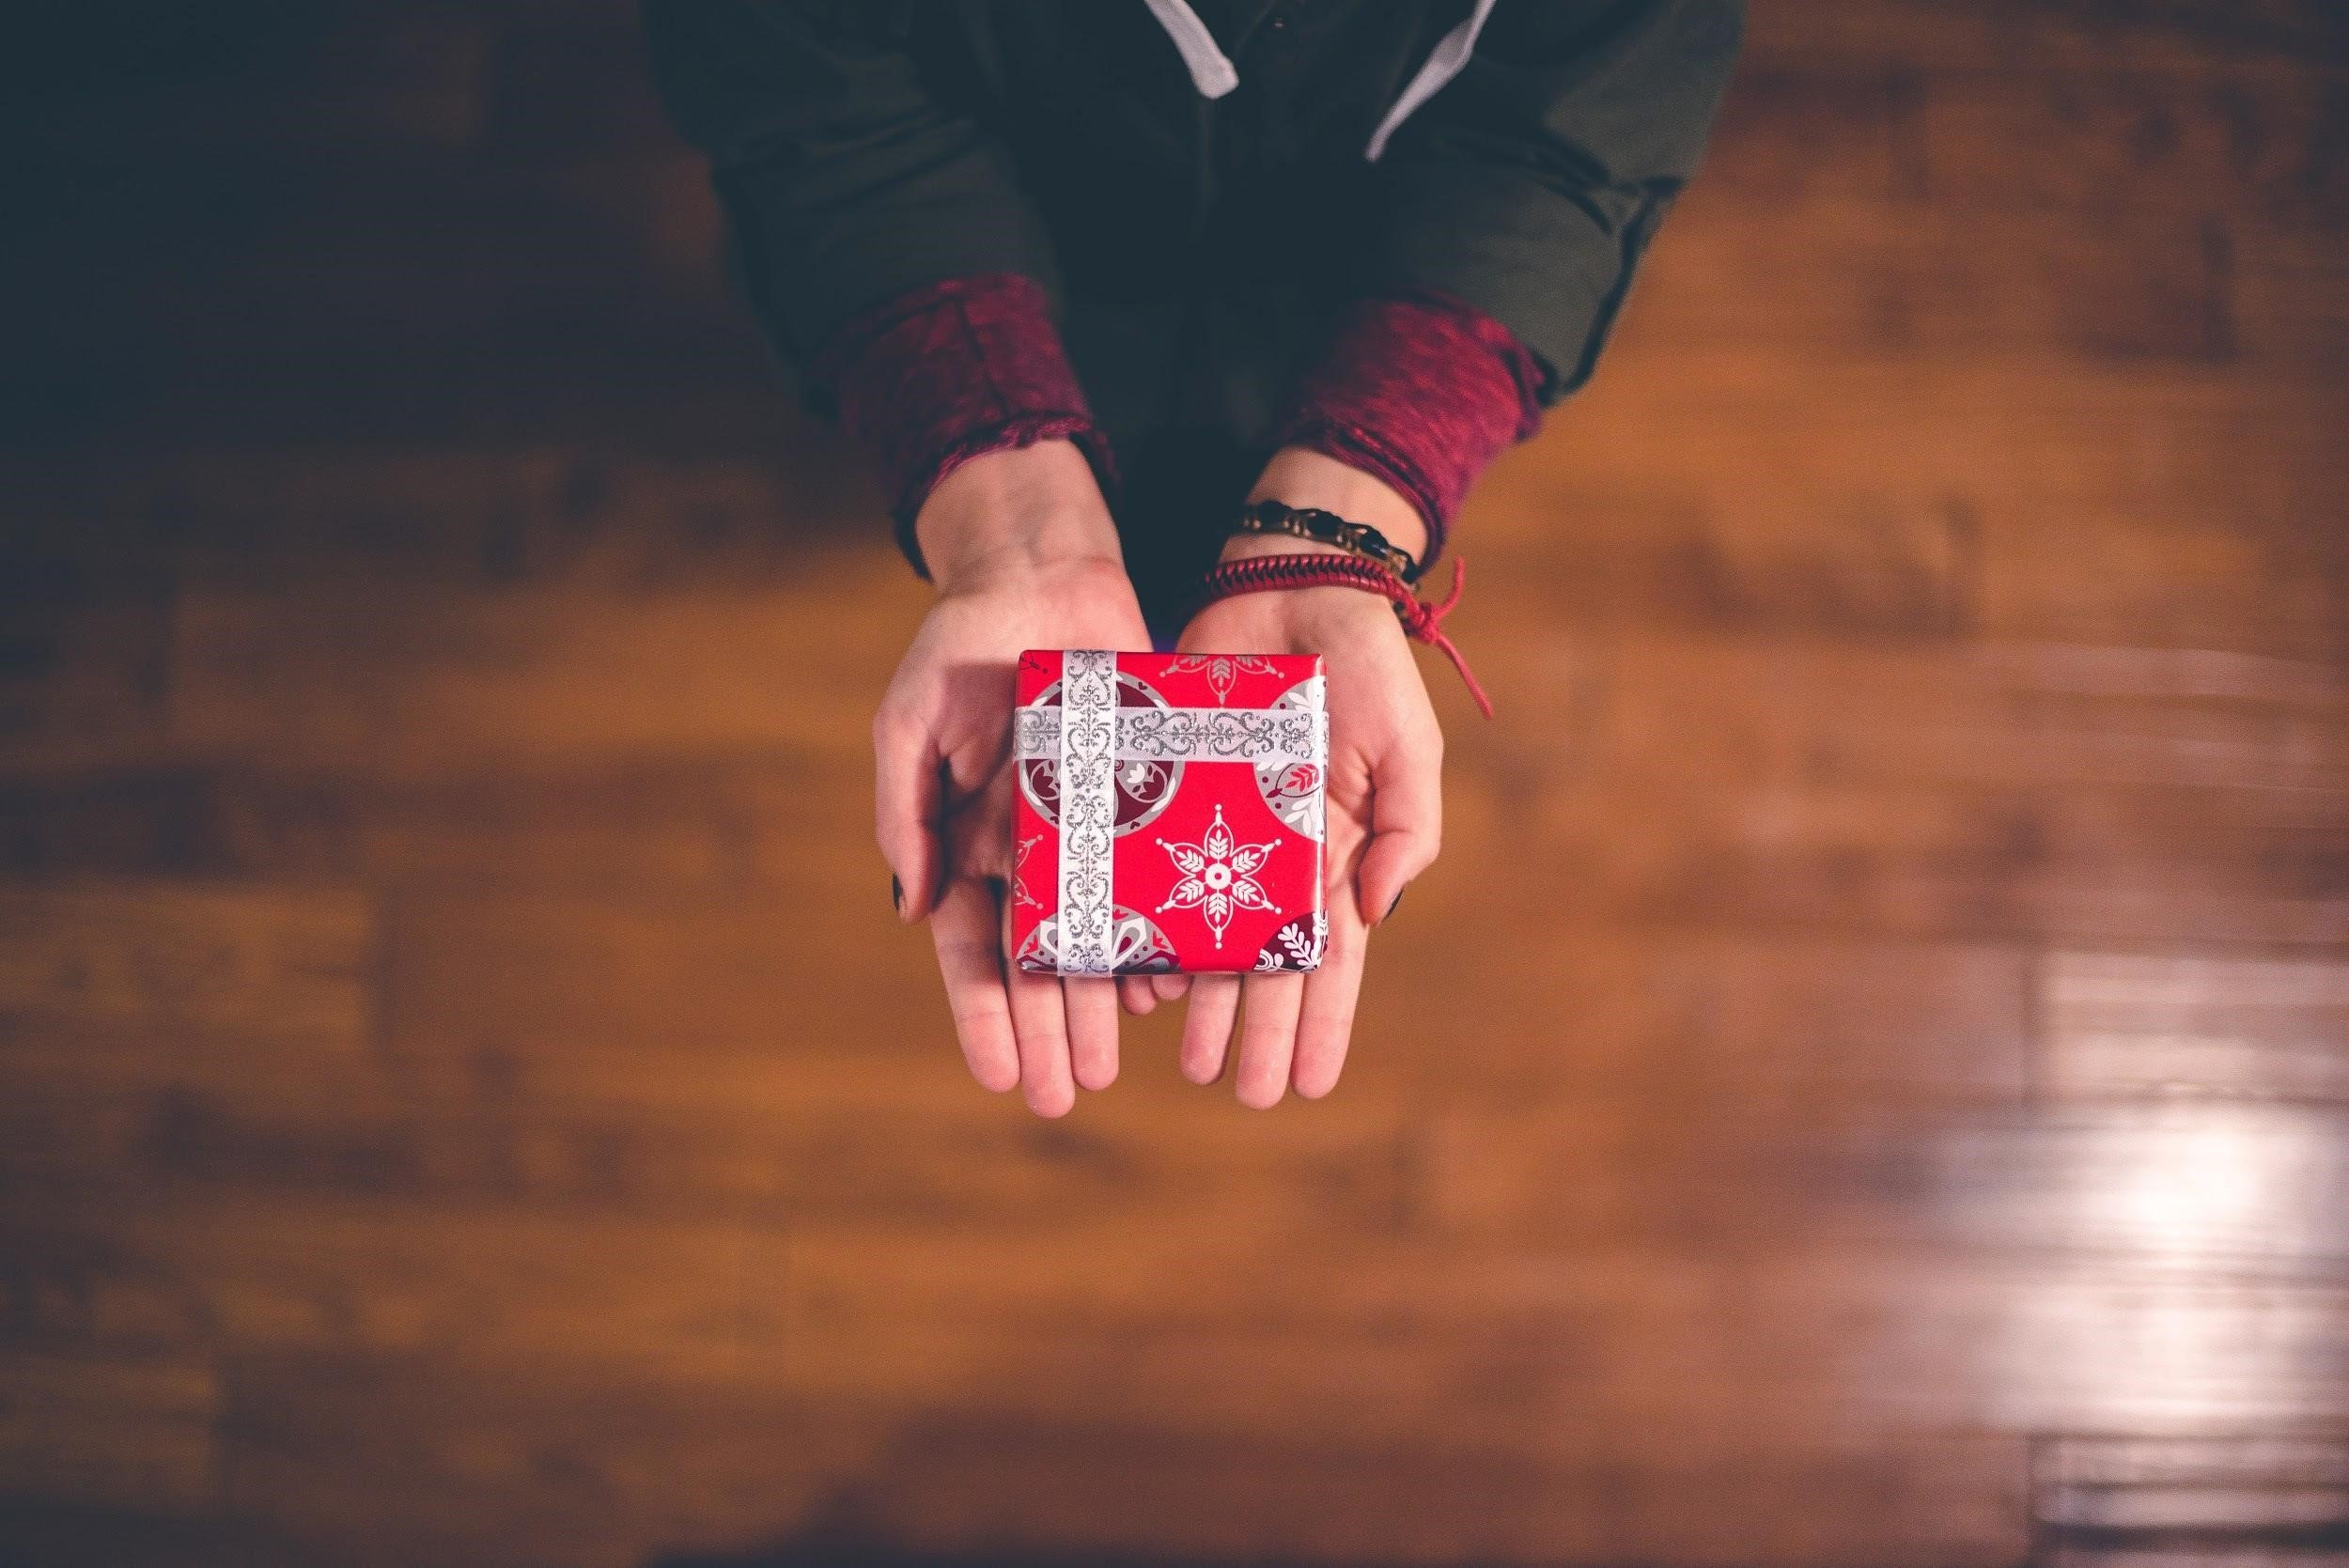 family caregiver gifts